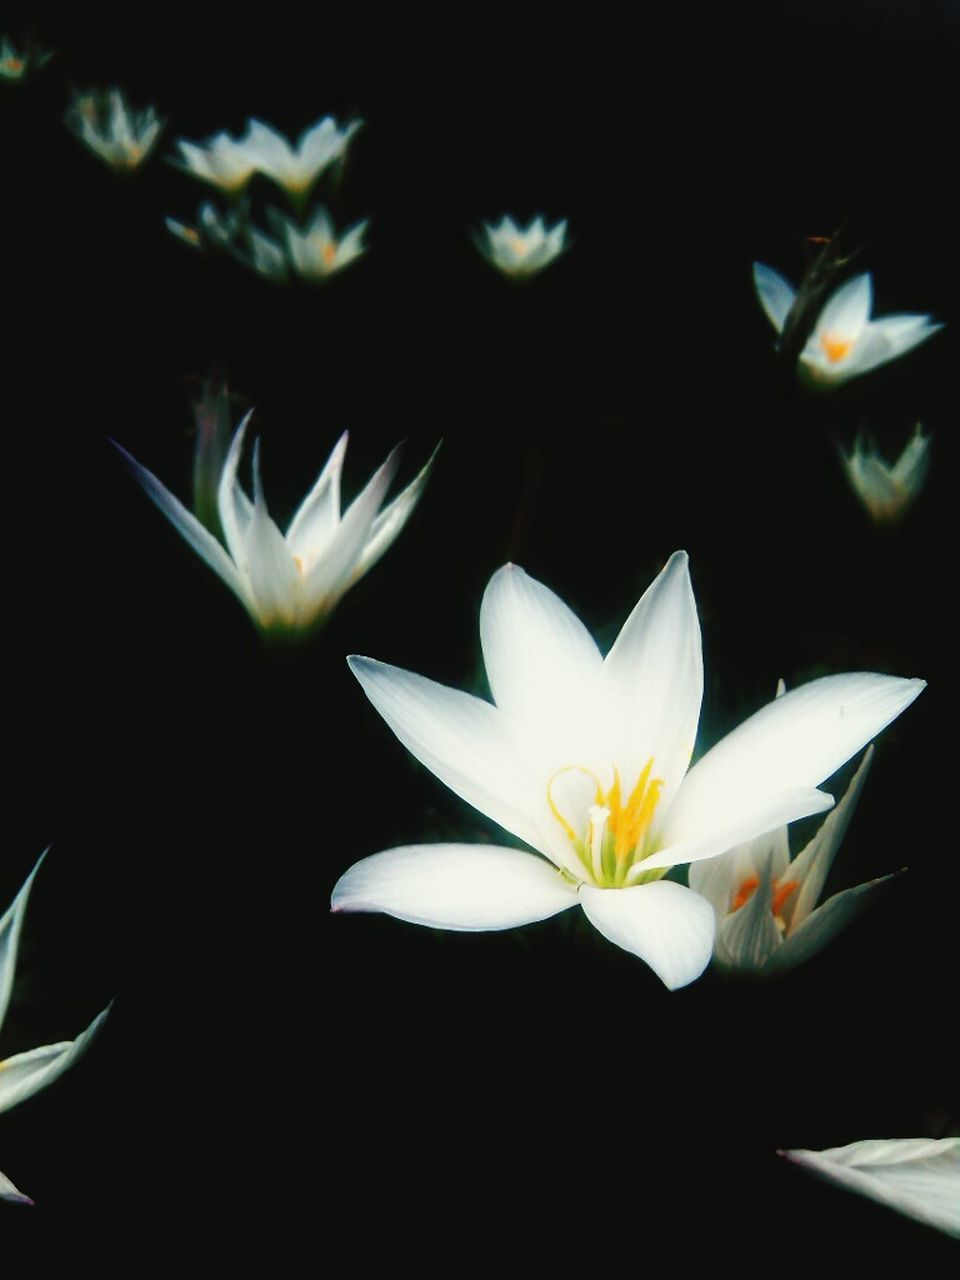 flower, petal, white color, flower head, fragility, freshness, beauty in nature, nature, growth, close-up, no people, day, black background, outdoors